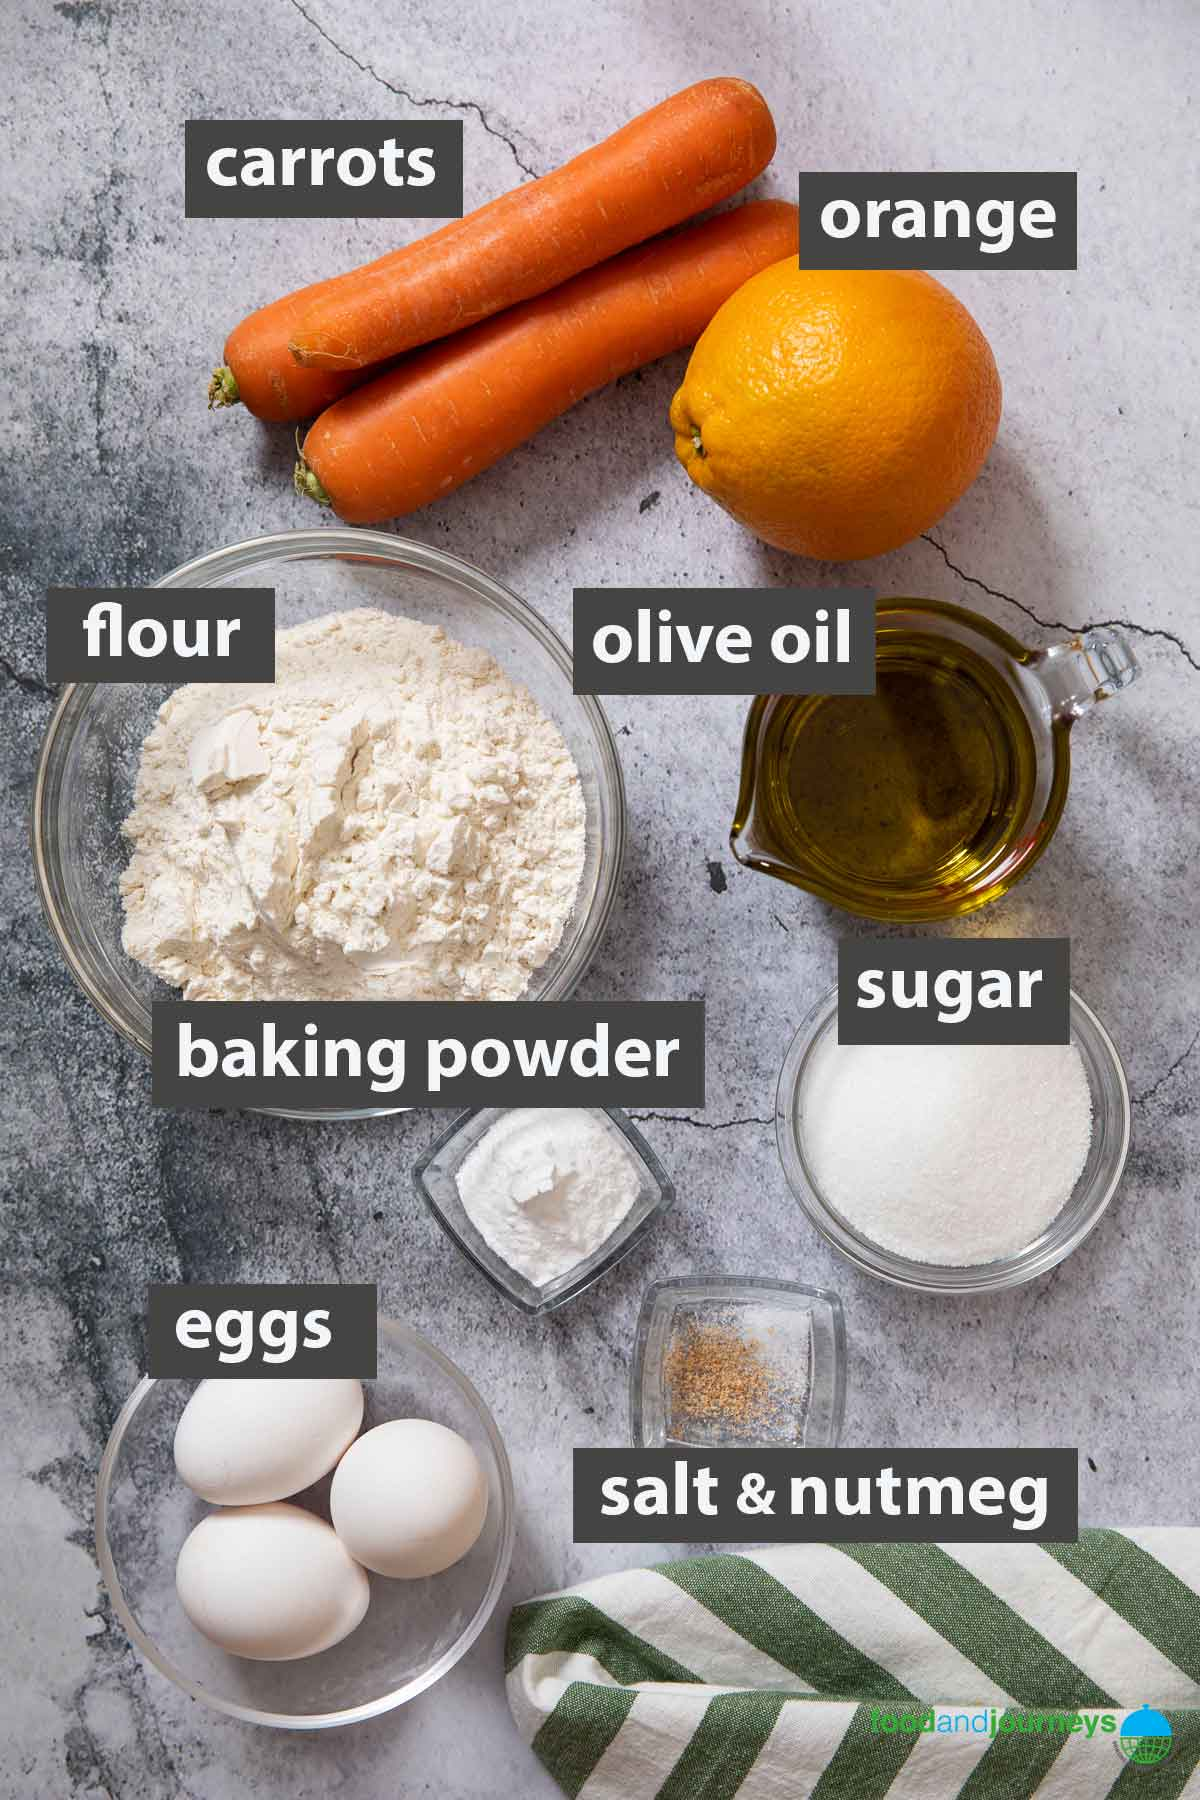 An image showing all the ingredients you need to make a moist carrot cake from scratch.